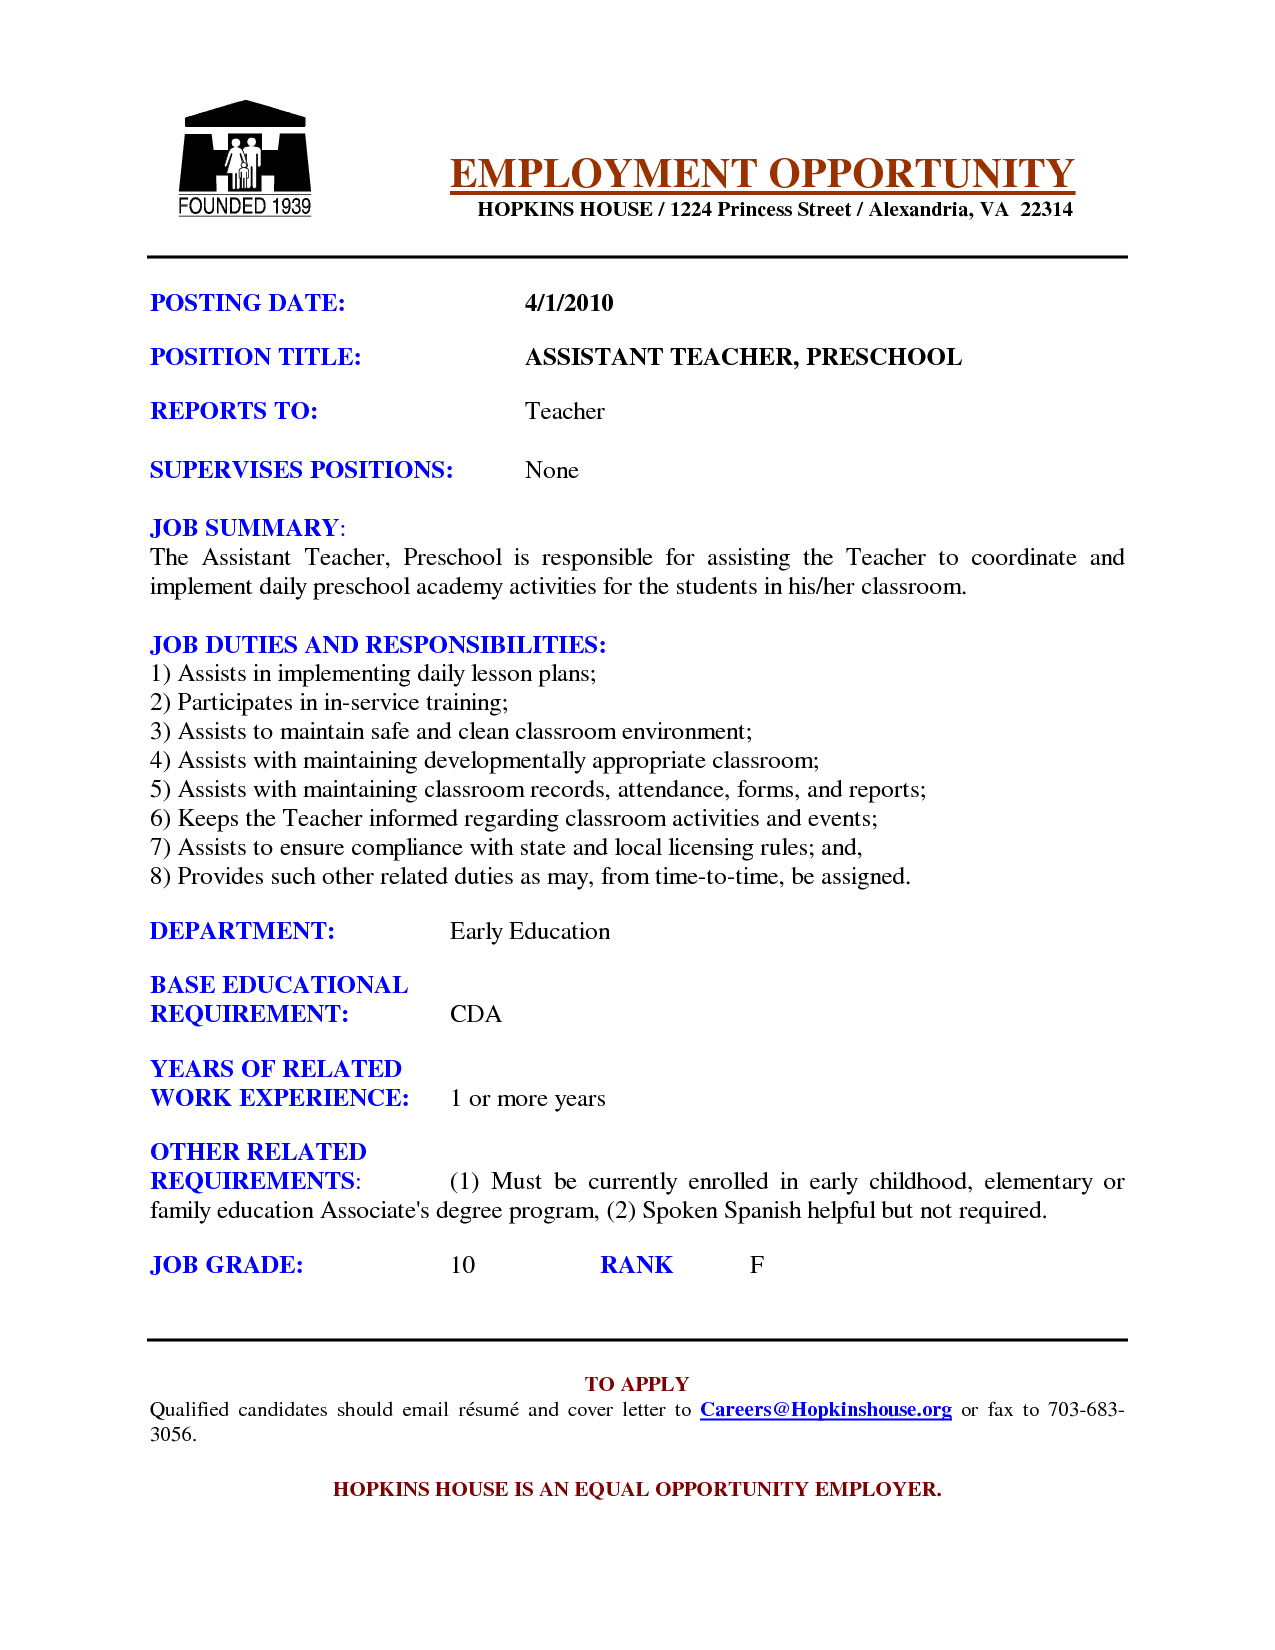 Cover Letter for Teaching Job Template - Sample Cover Letters for Teachers Samples